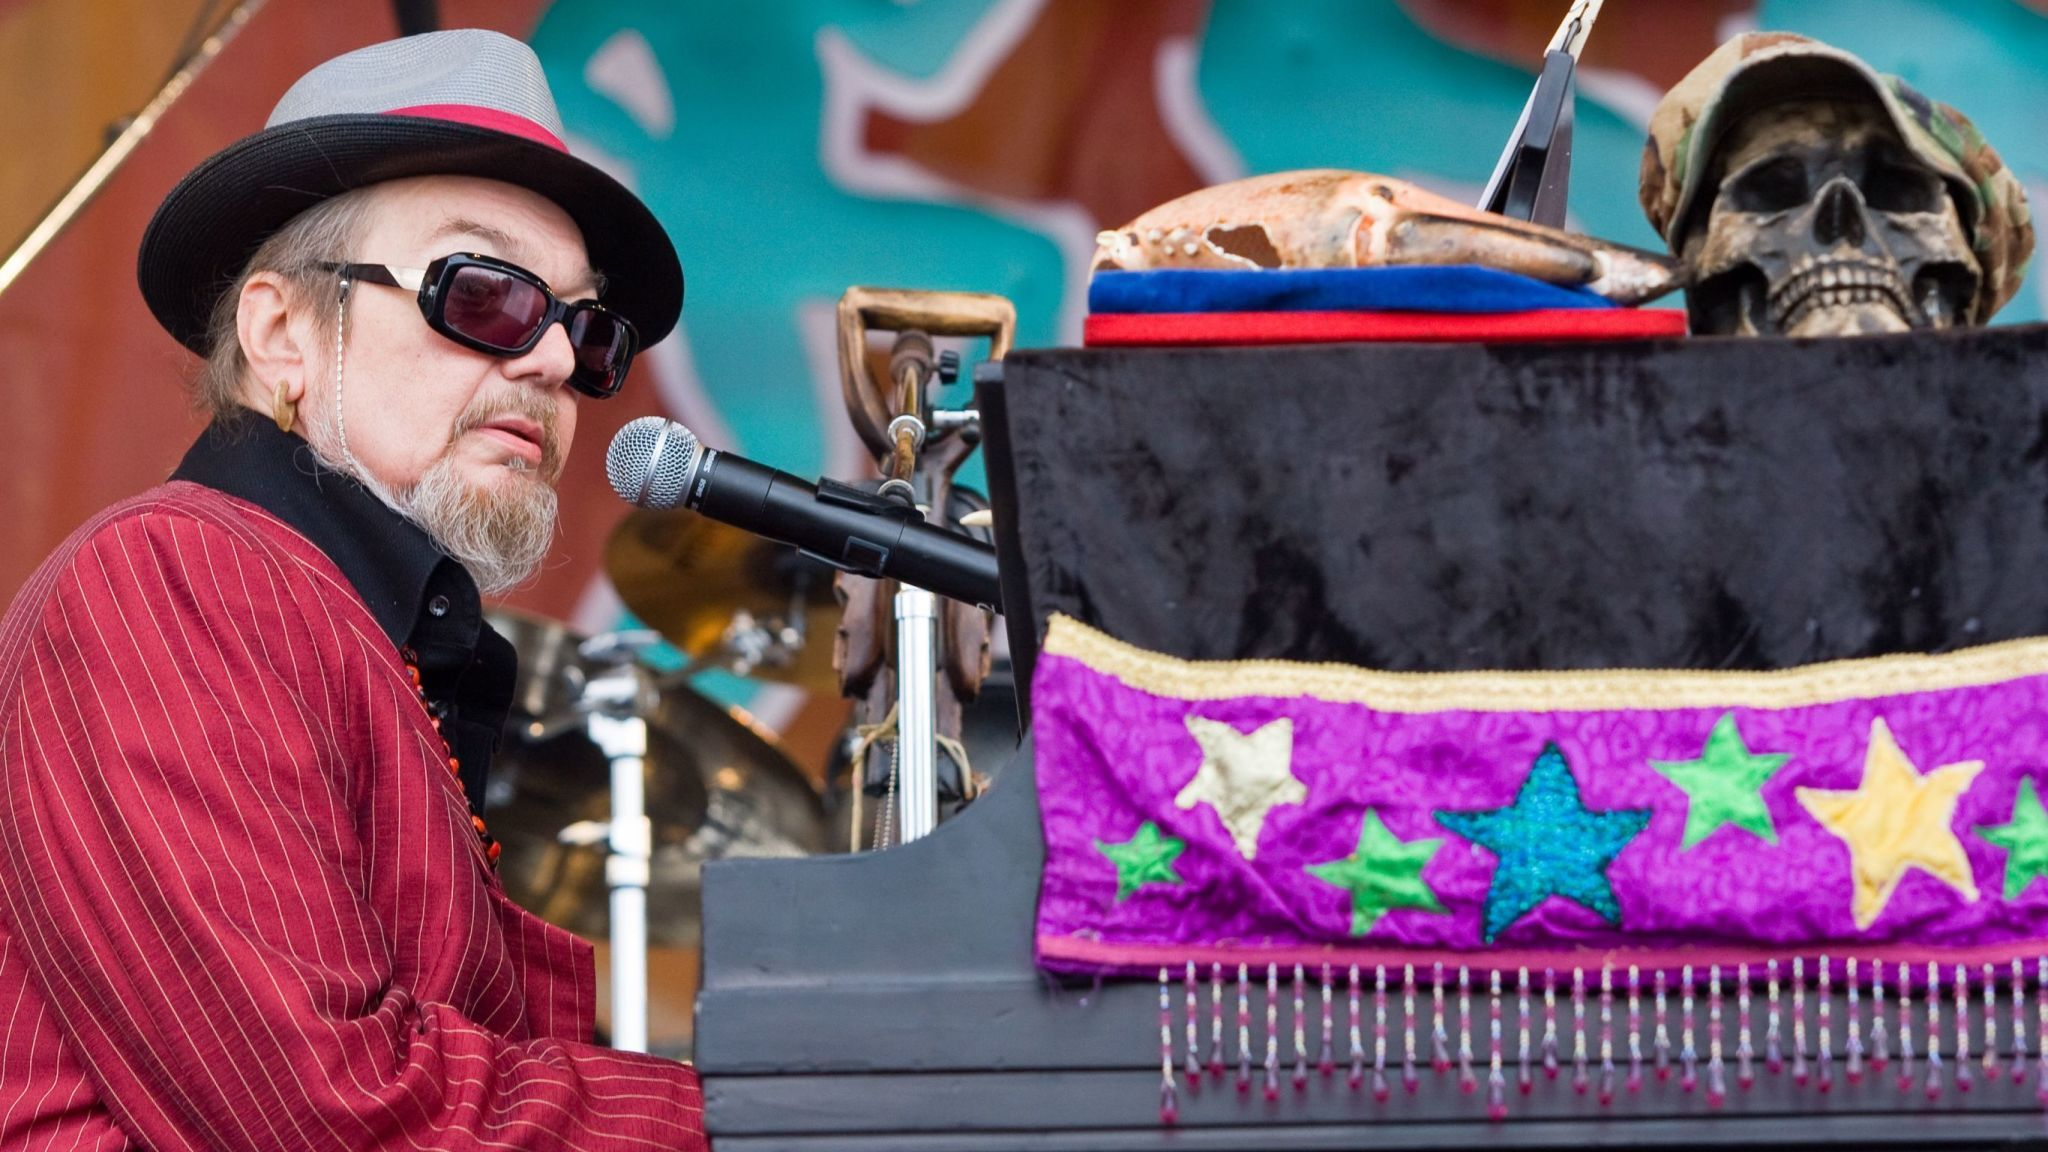 Dr John, the Night Tripper, aka Mac Rebennack, 1941-2019